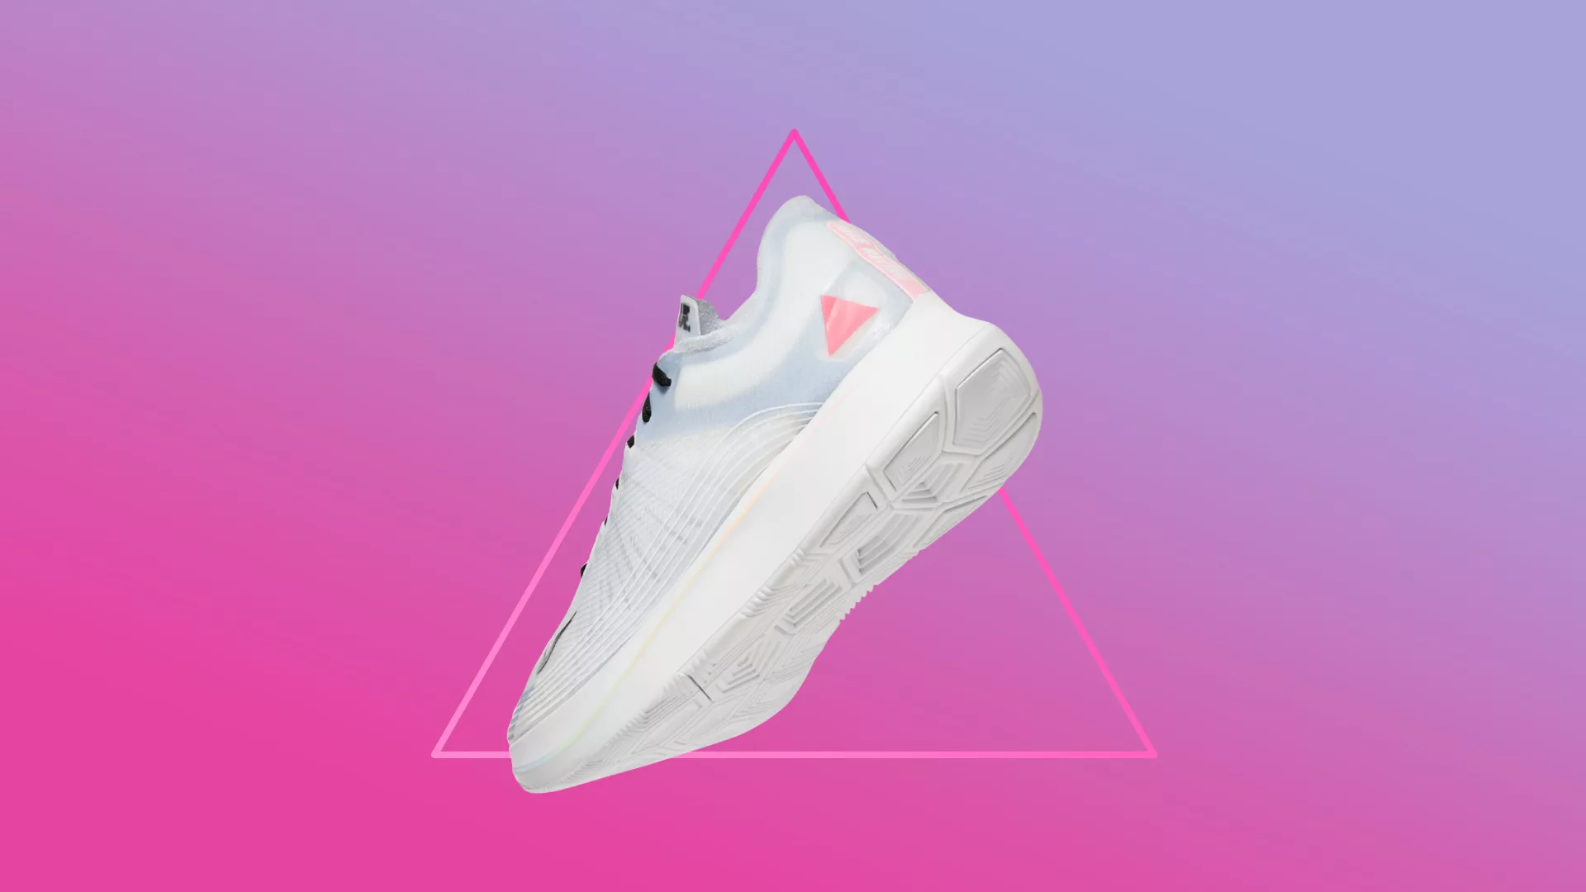 57c5b4c821523 The symbols on the Nike BETRUE Zoom Fly – the pink triangle and the classic  rainbow – are partly inspired by race-car decals.